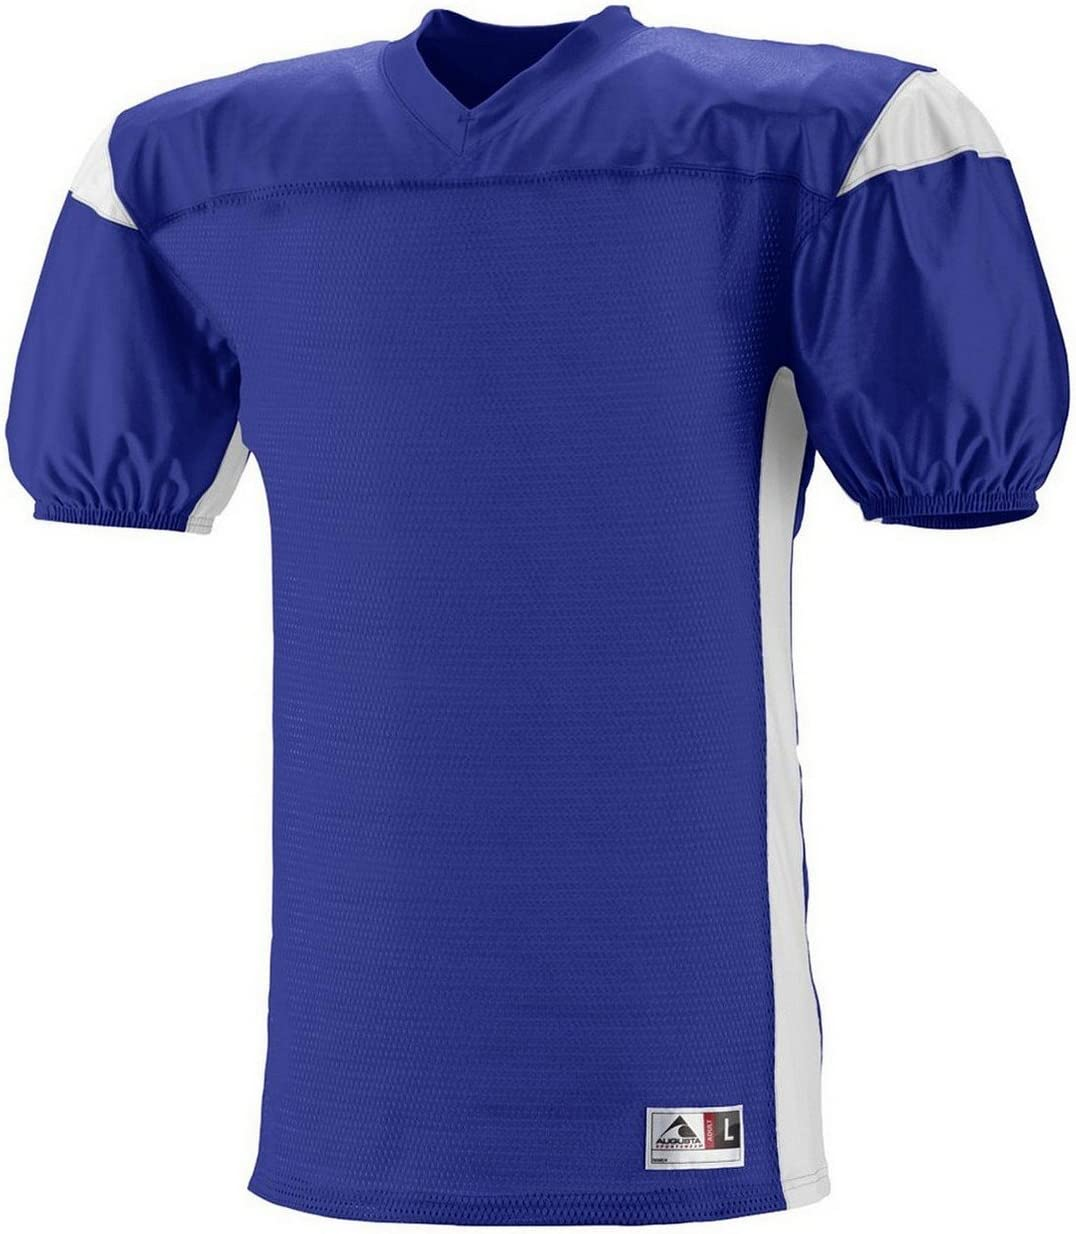 9521 AG YTH DOMINATOR MESH JERSEY PURPLE/ WHITE L